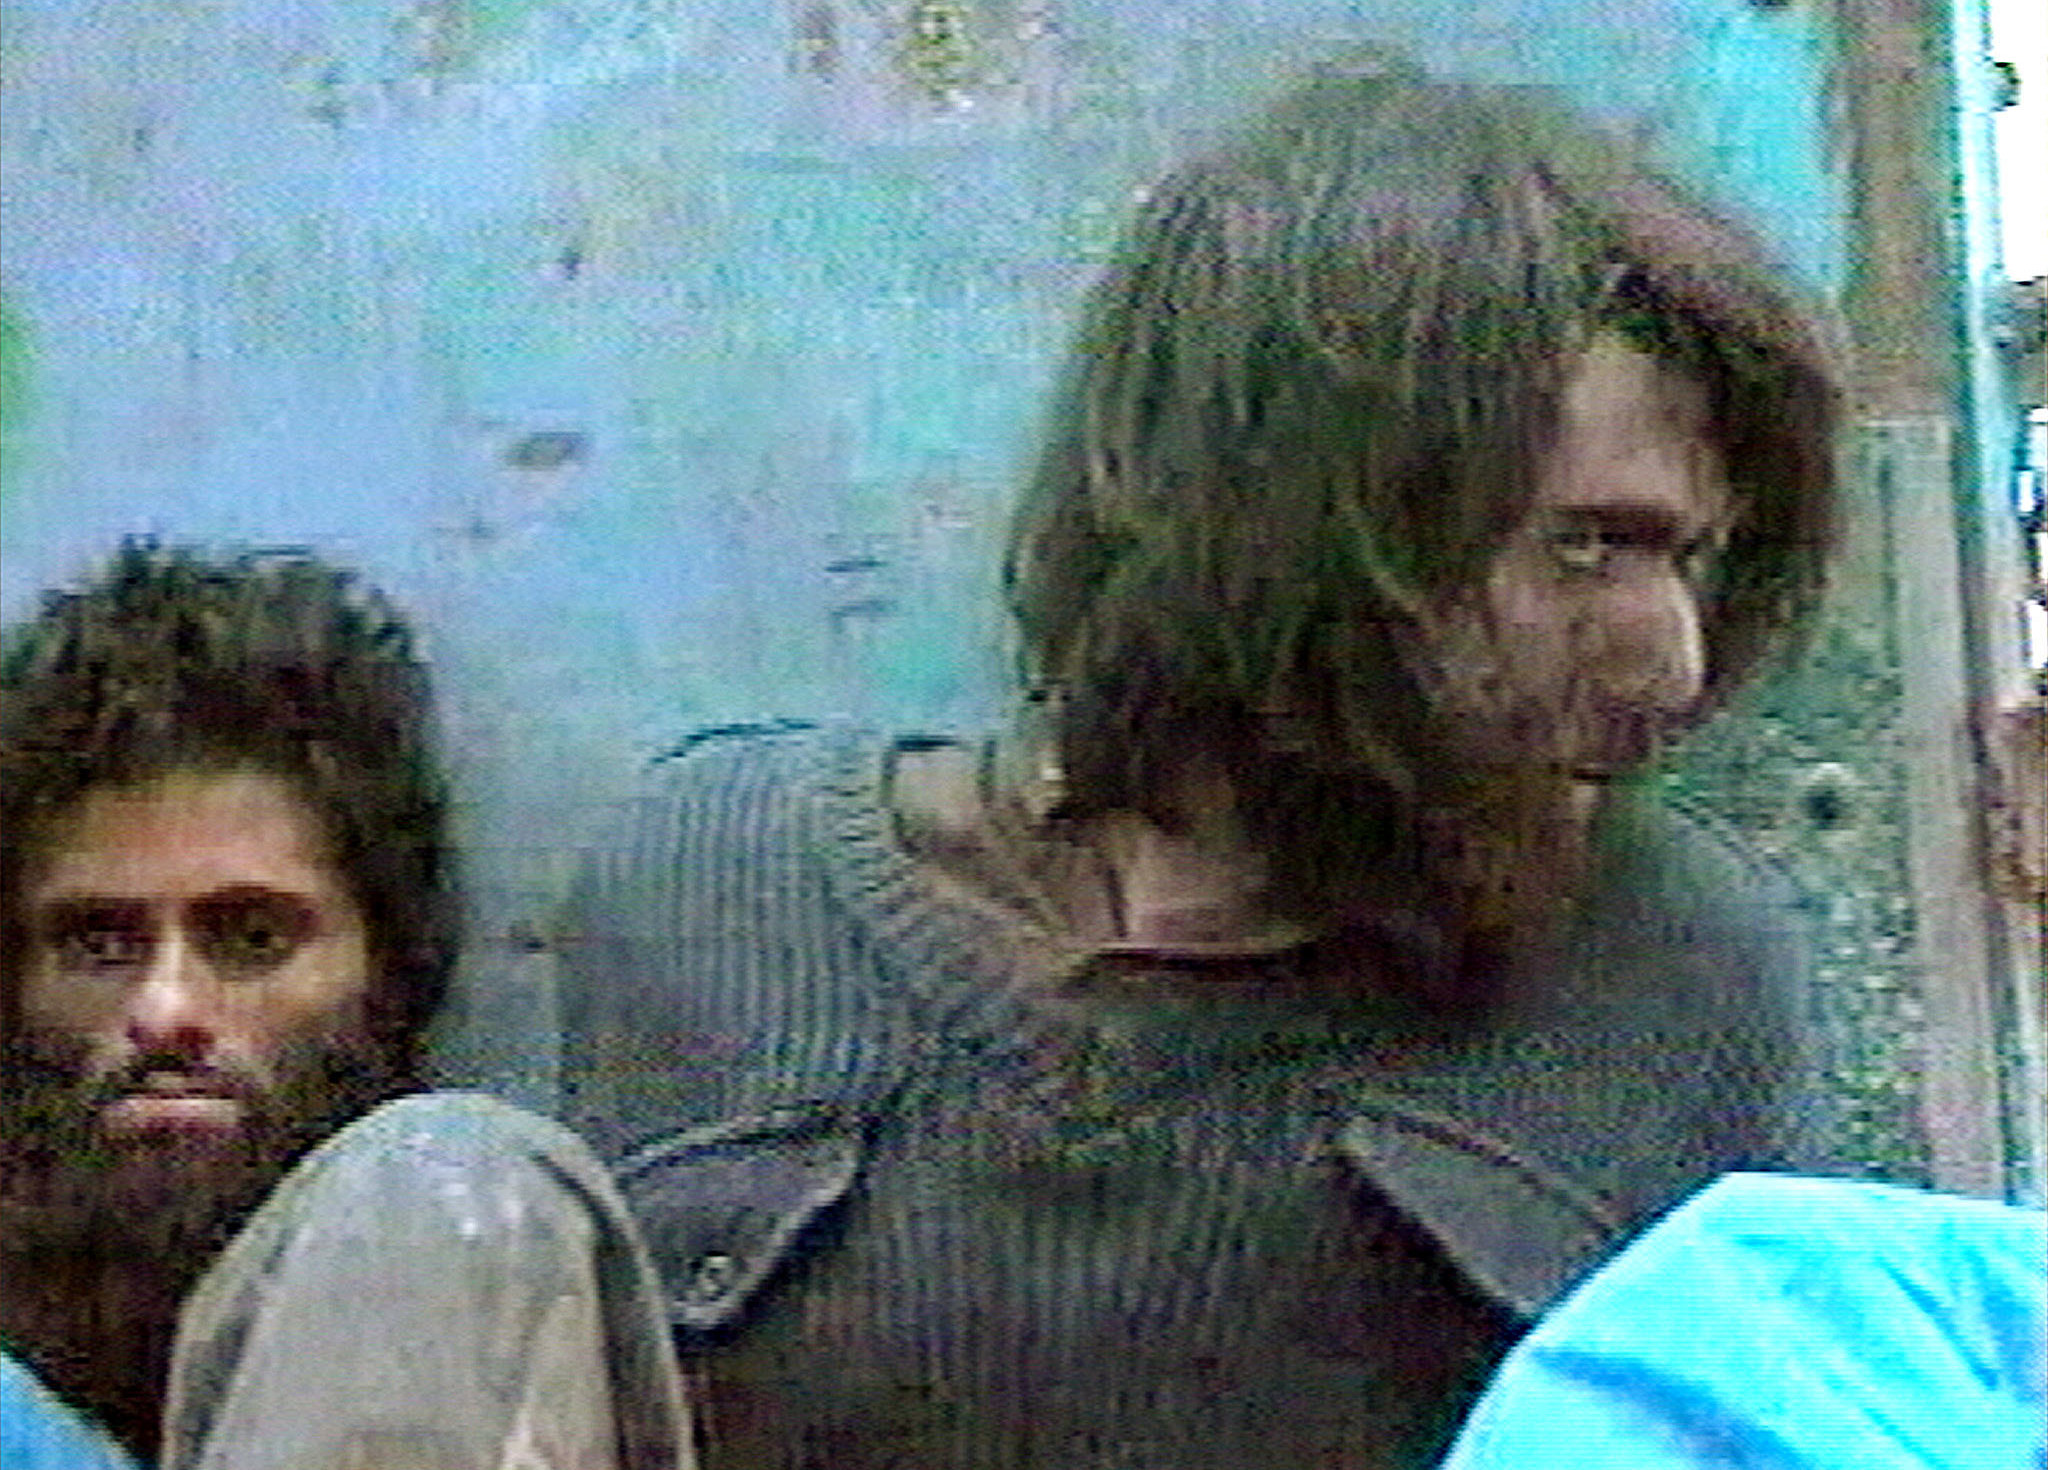 John Walker Lindh, The 'American Taliban,' Set To Be Released